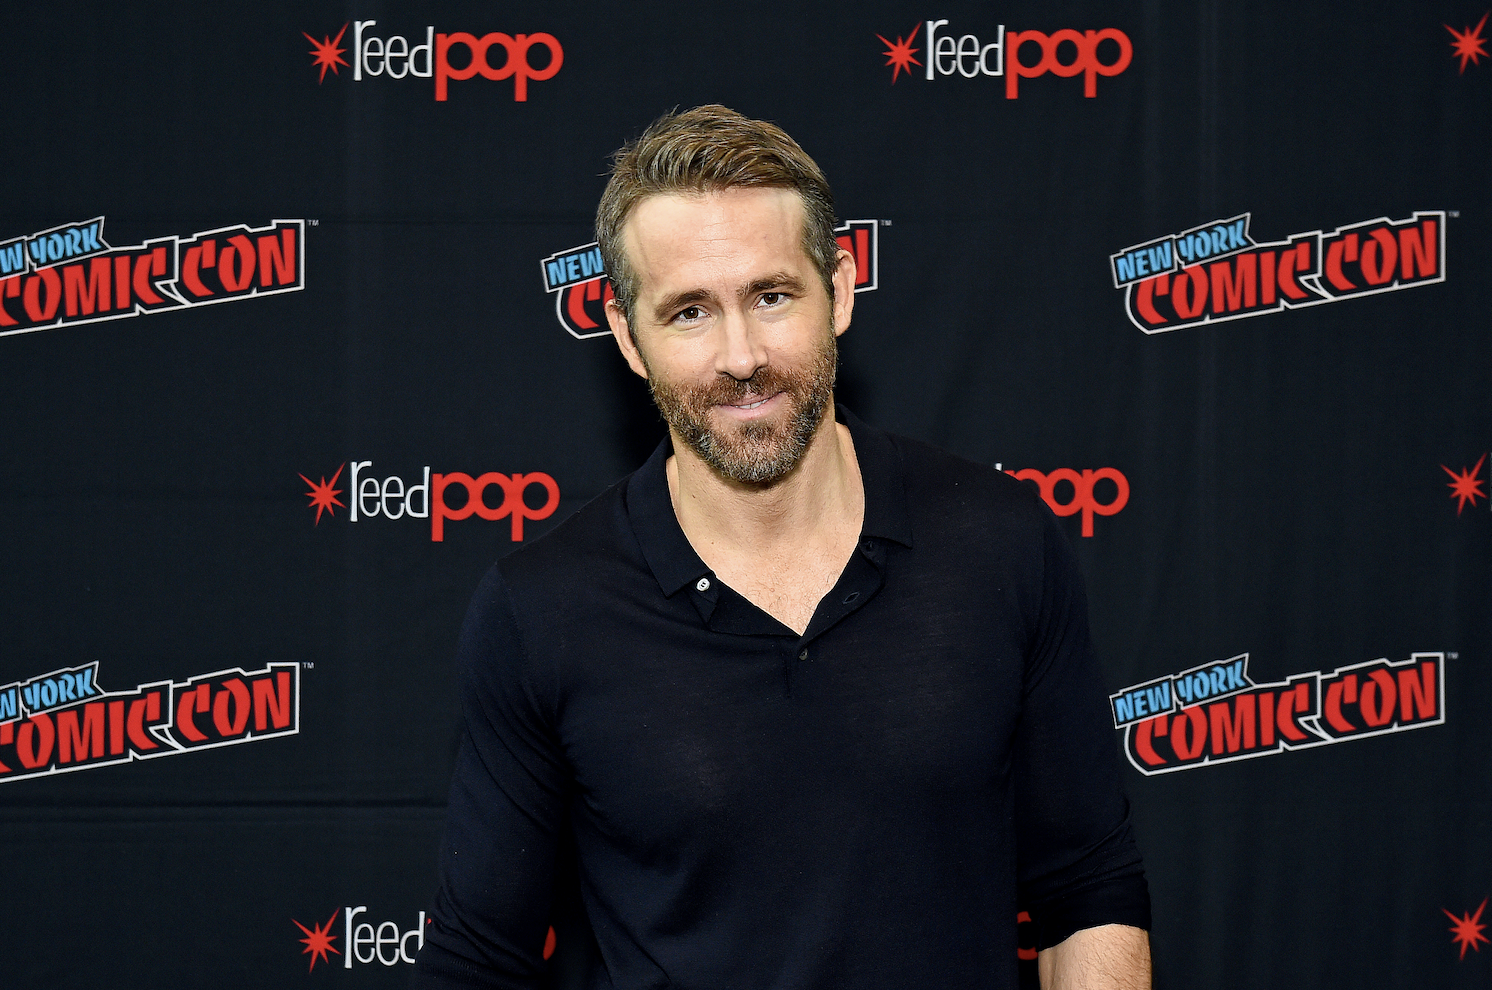 """Ryan Reynolds attends New York Comic Con in support of """"Free Guy"""" at The Jacob K. Javits Convention Center on October 03, 2019 in New York City"""